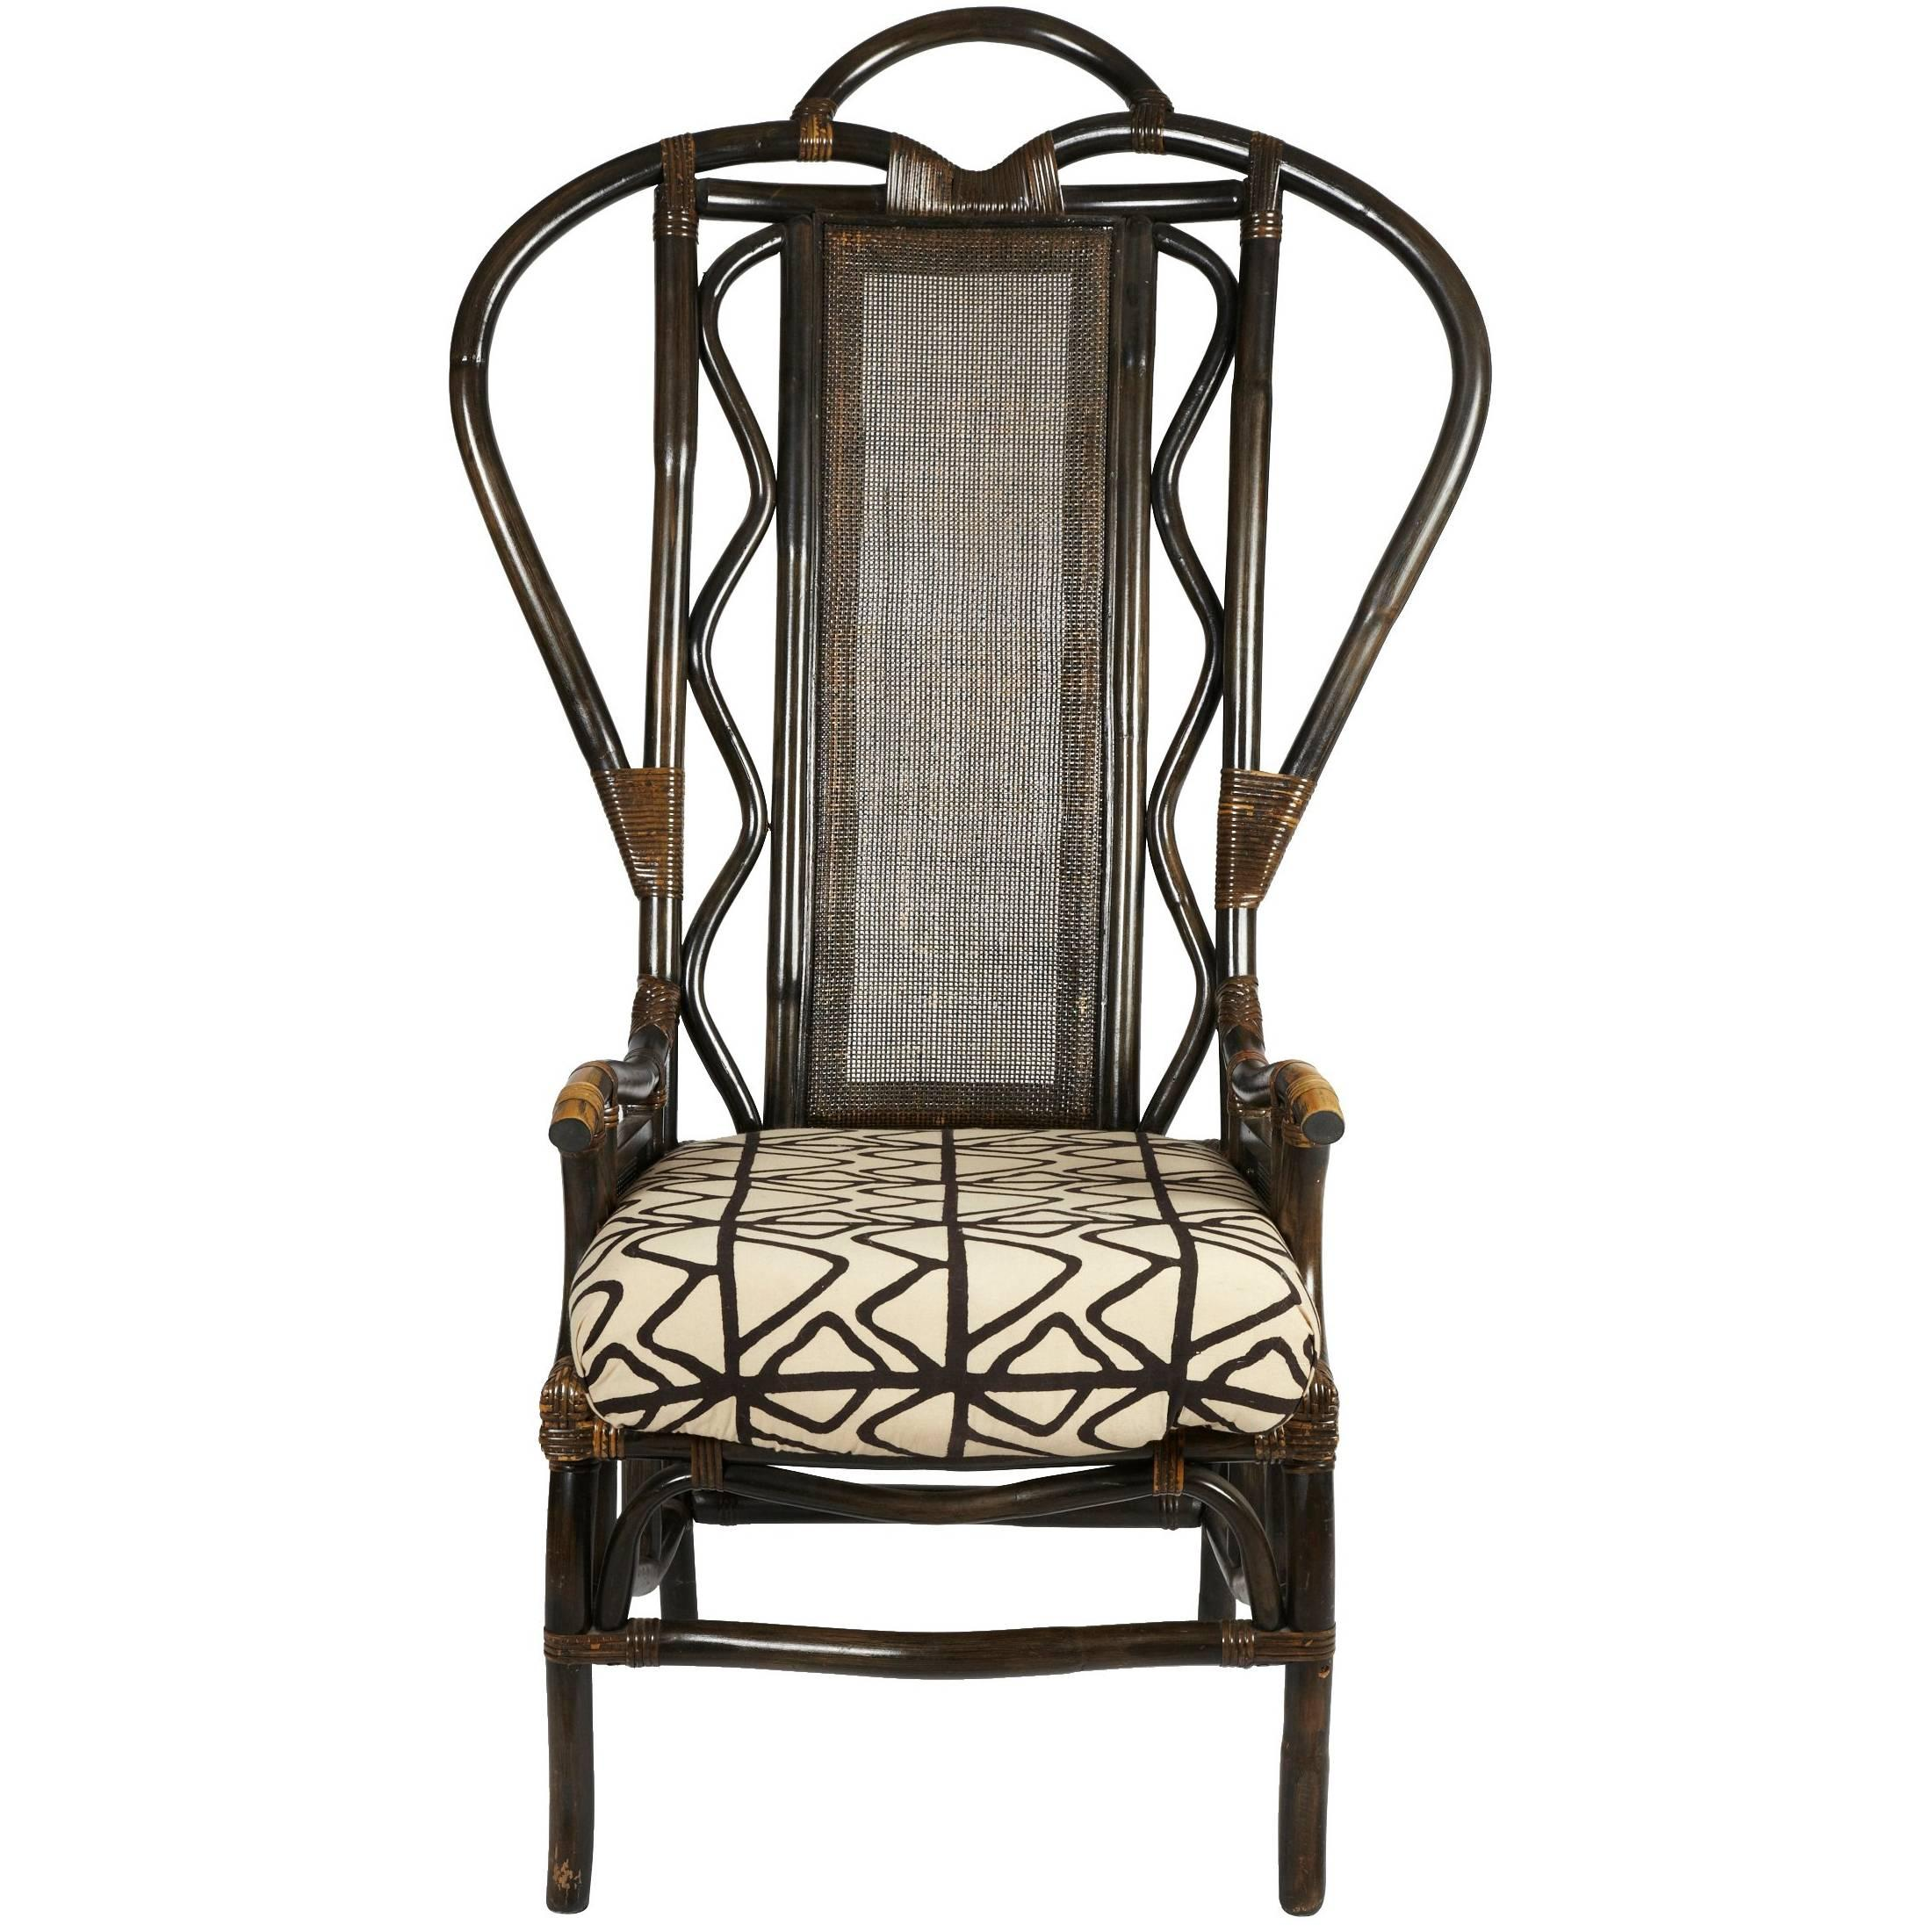 1950s High Back Bentwood Chair